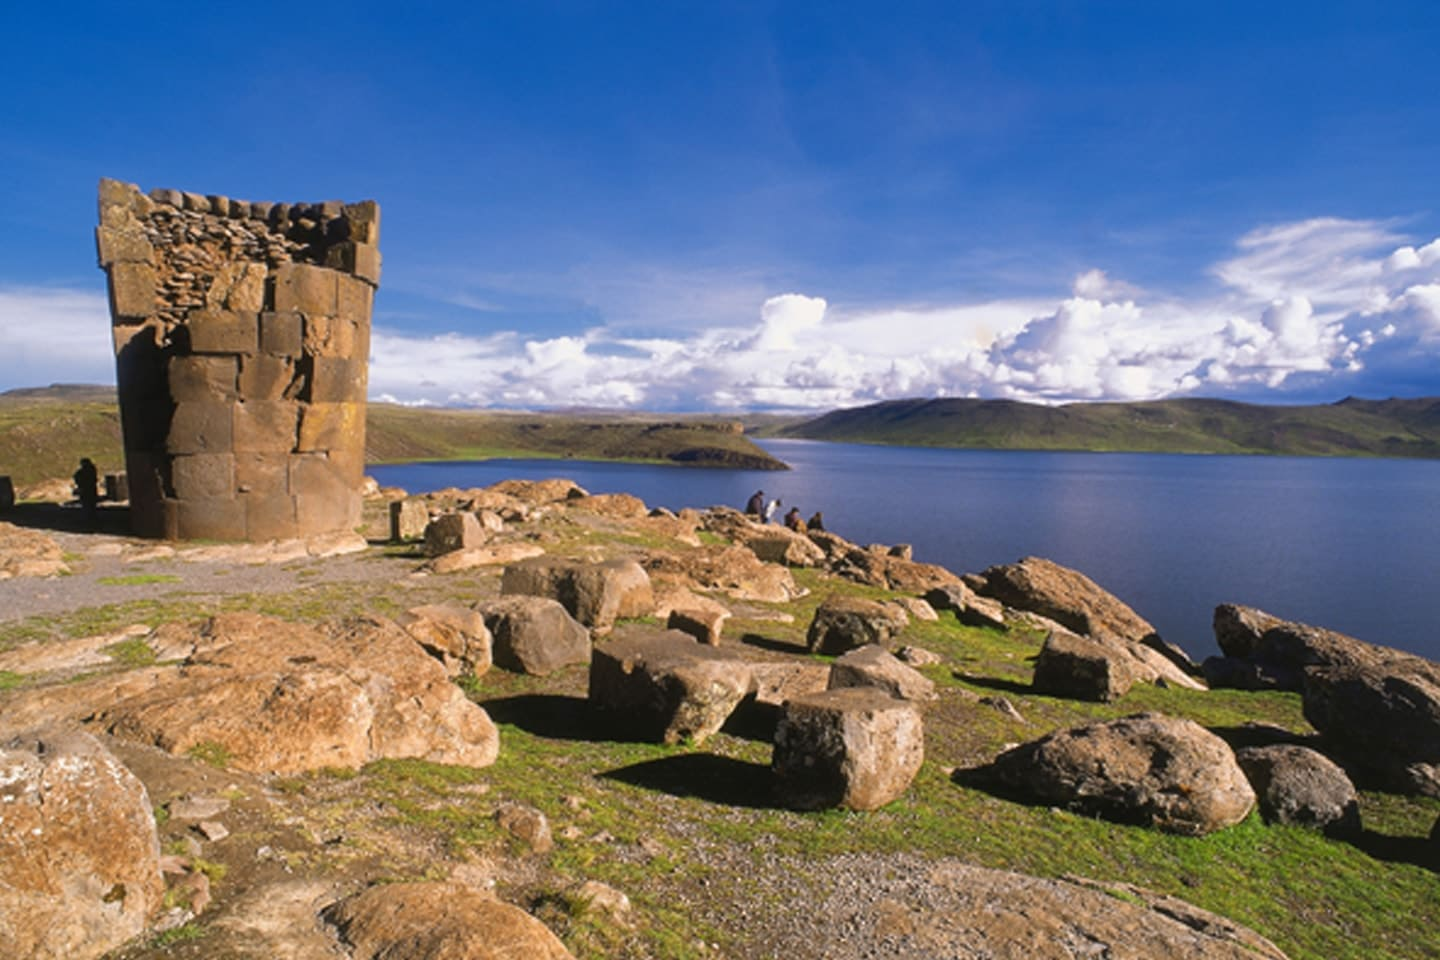 located on the shore of Lake Titicaca and the mountains surrounding the city.